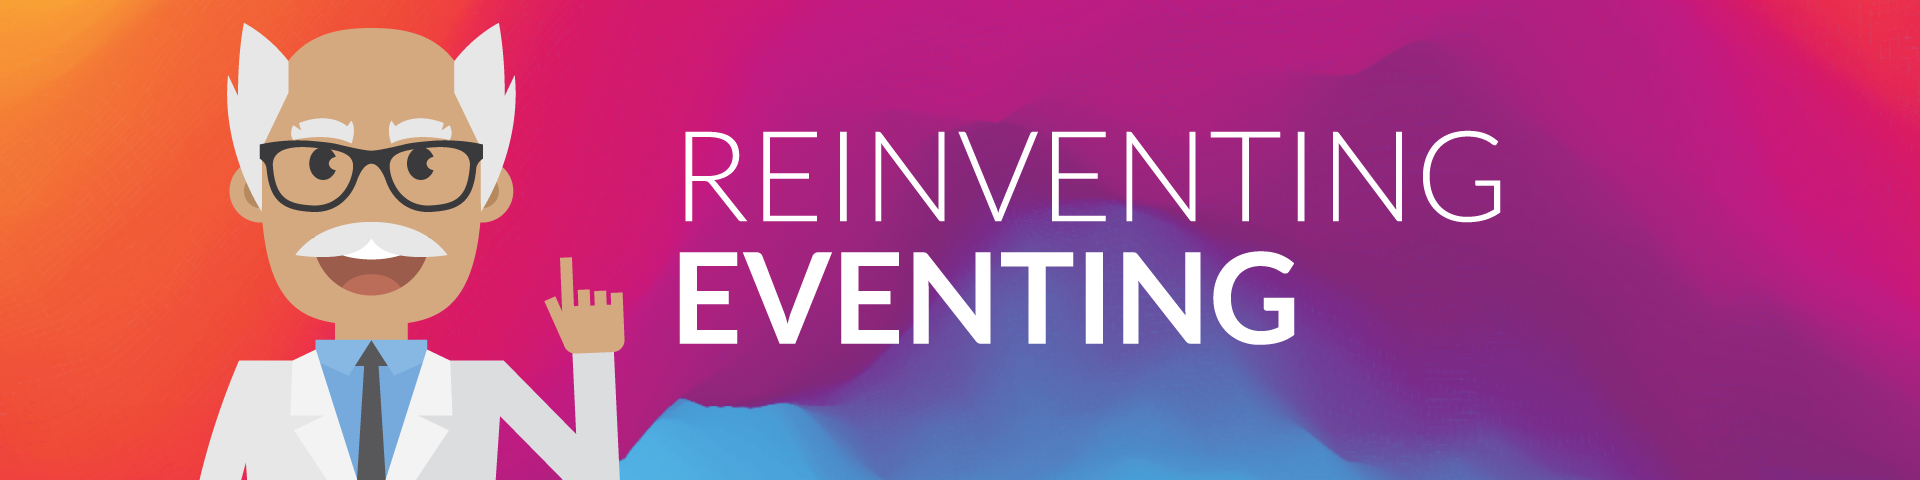 reinventing-eventing-blogbanners.png